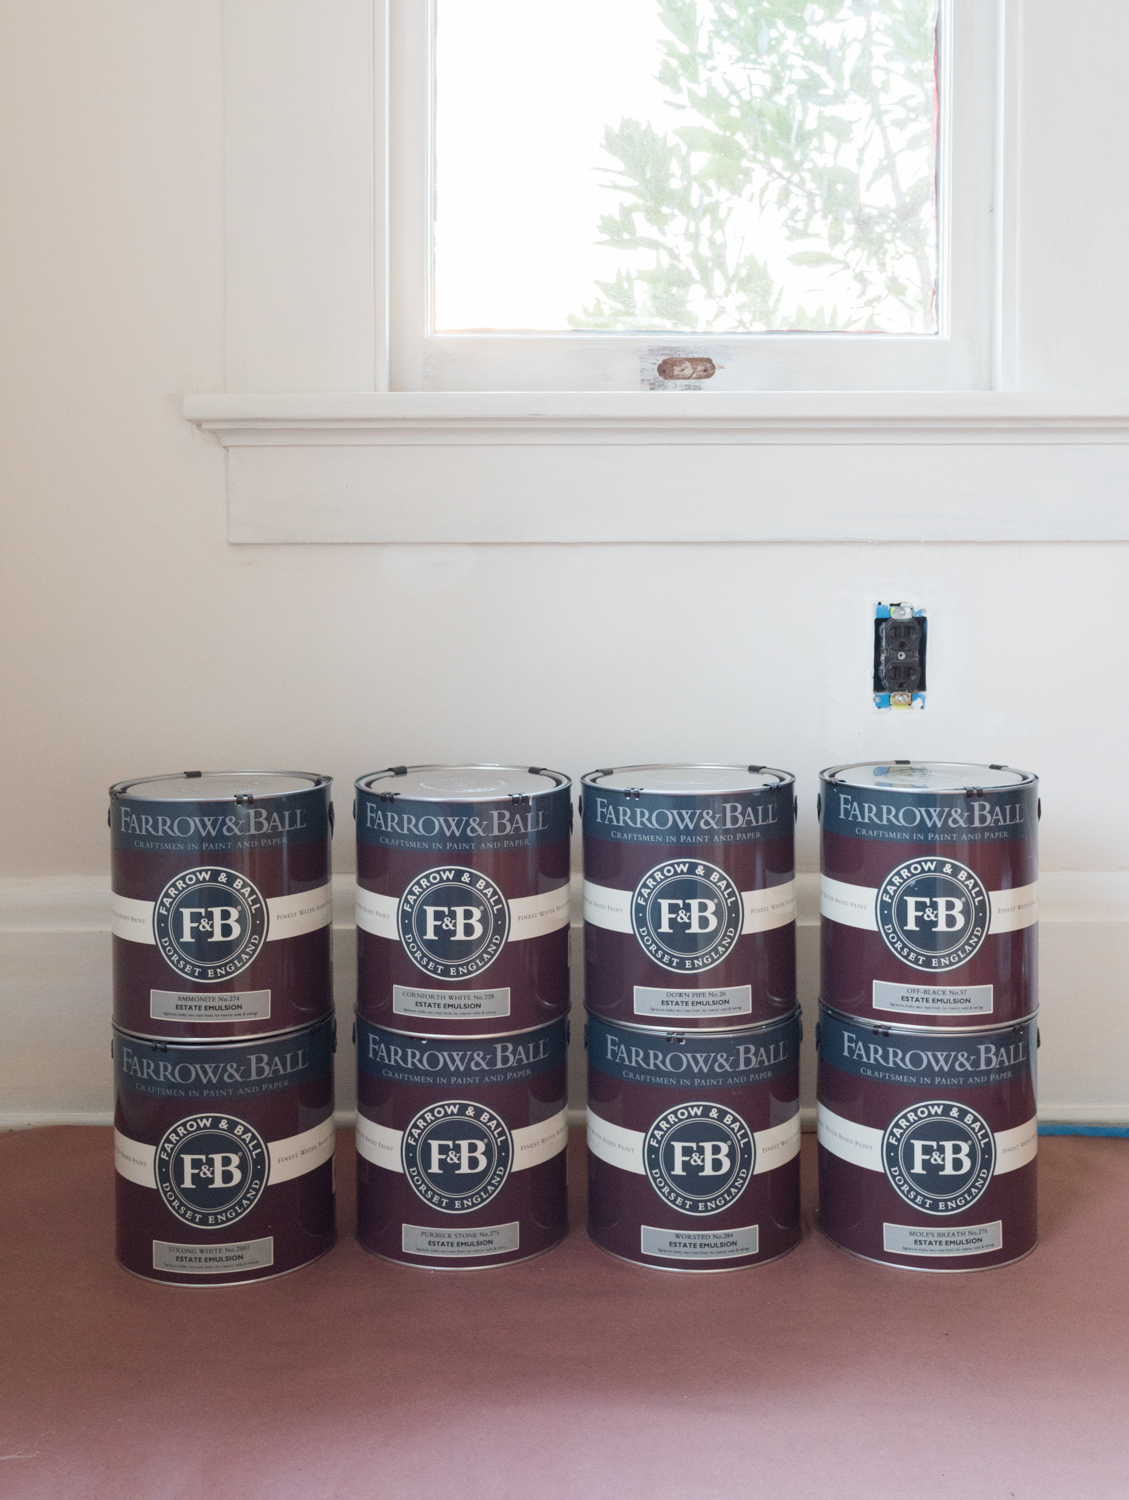 Farrow & Ball paint for dramatic wall mural